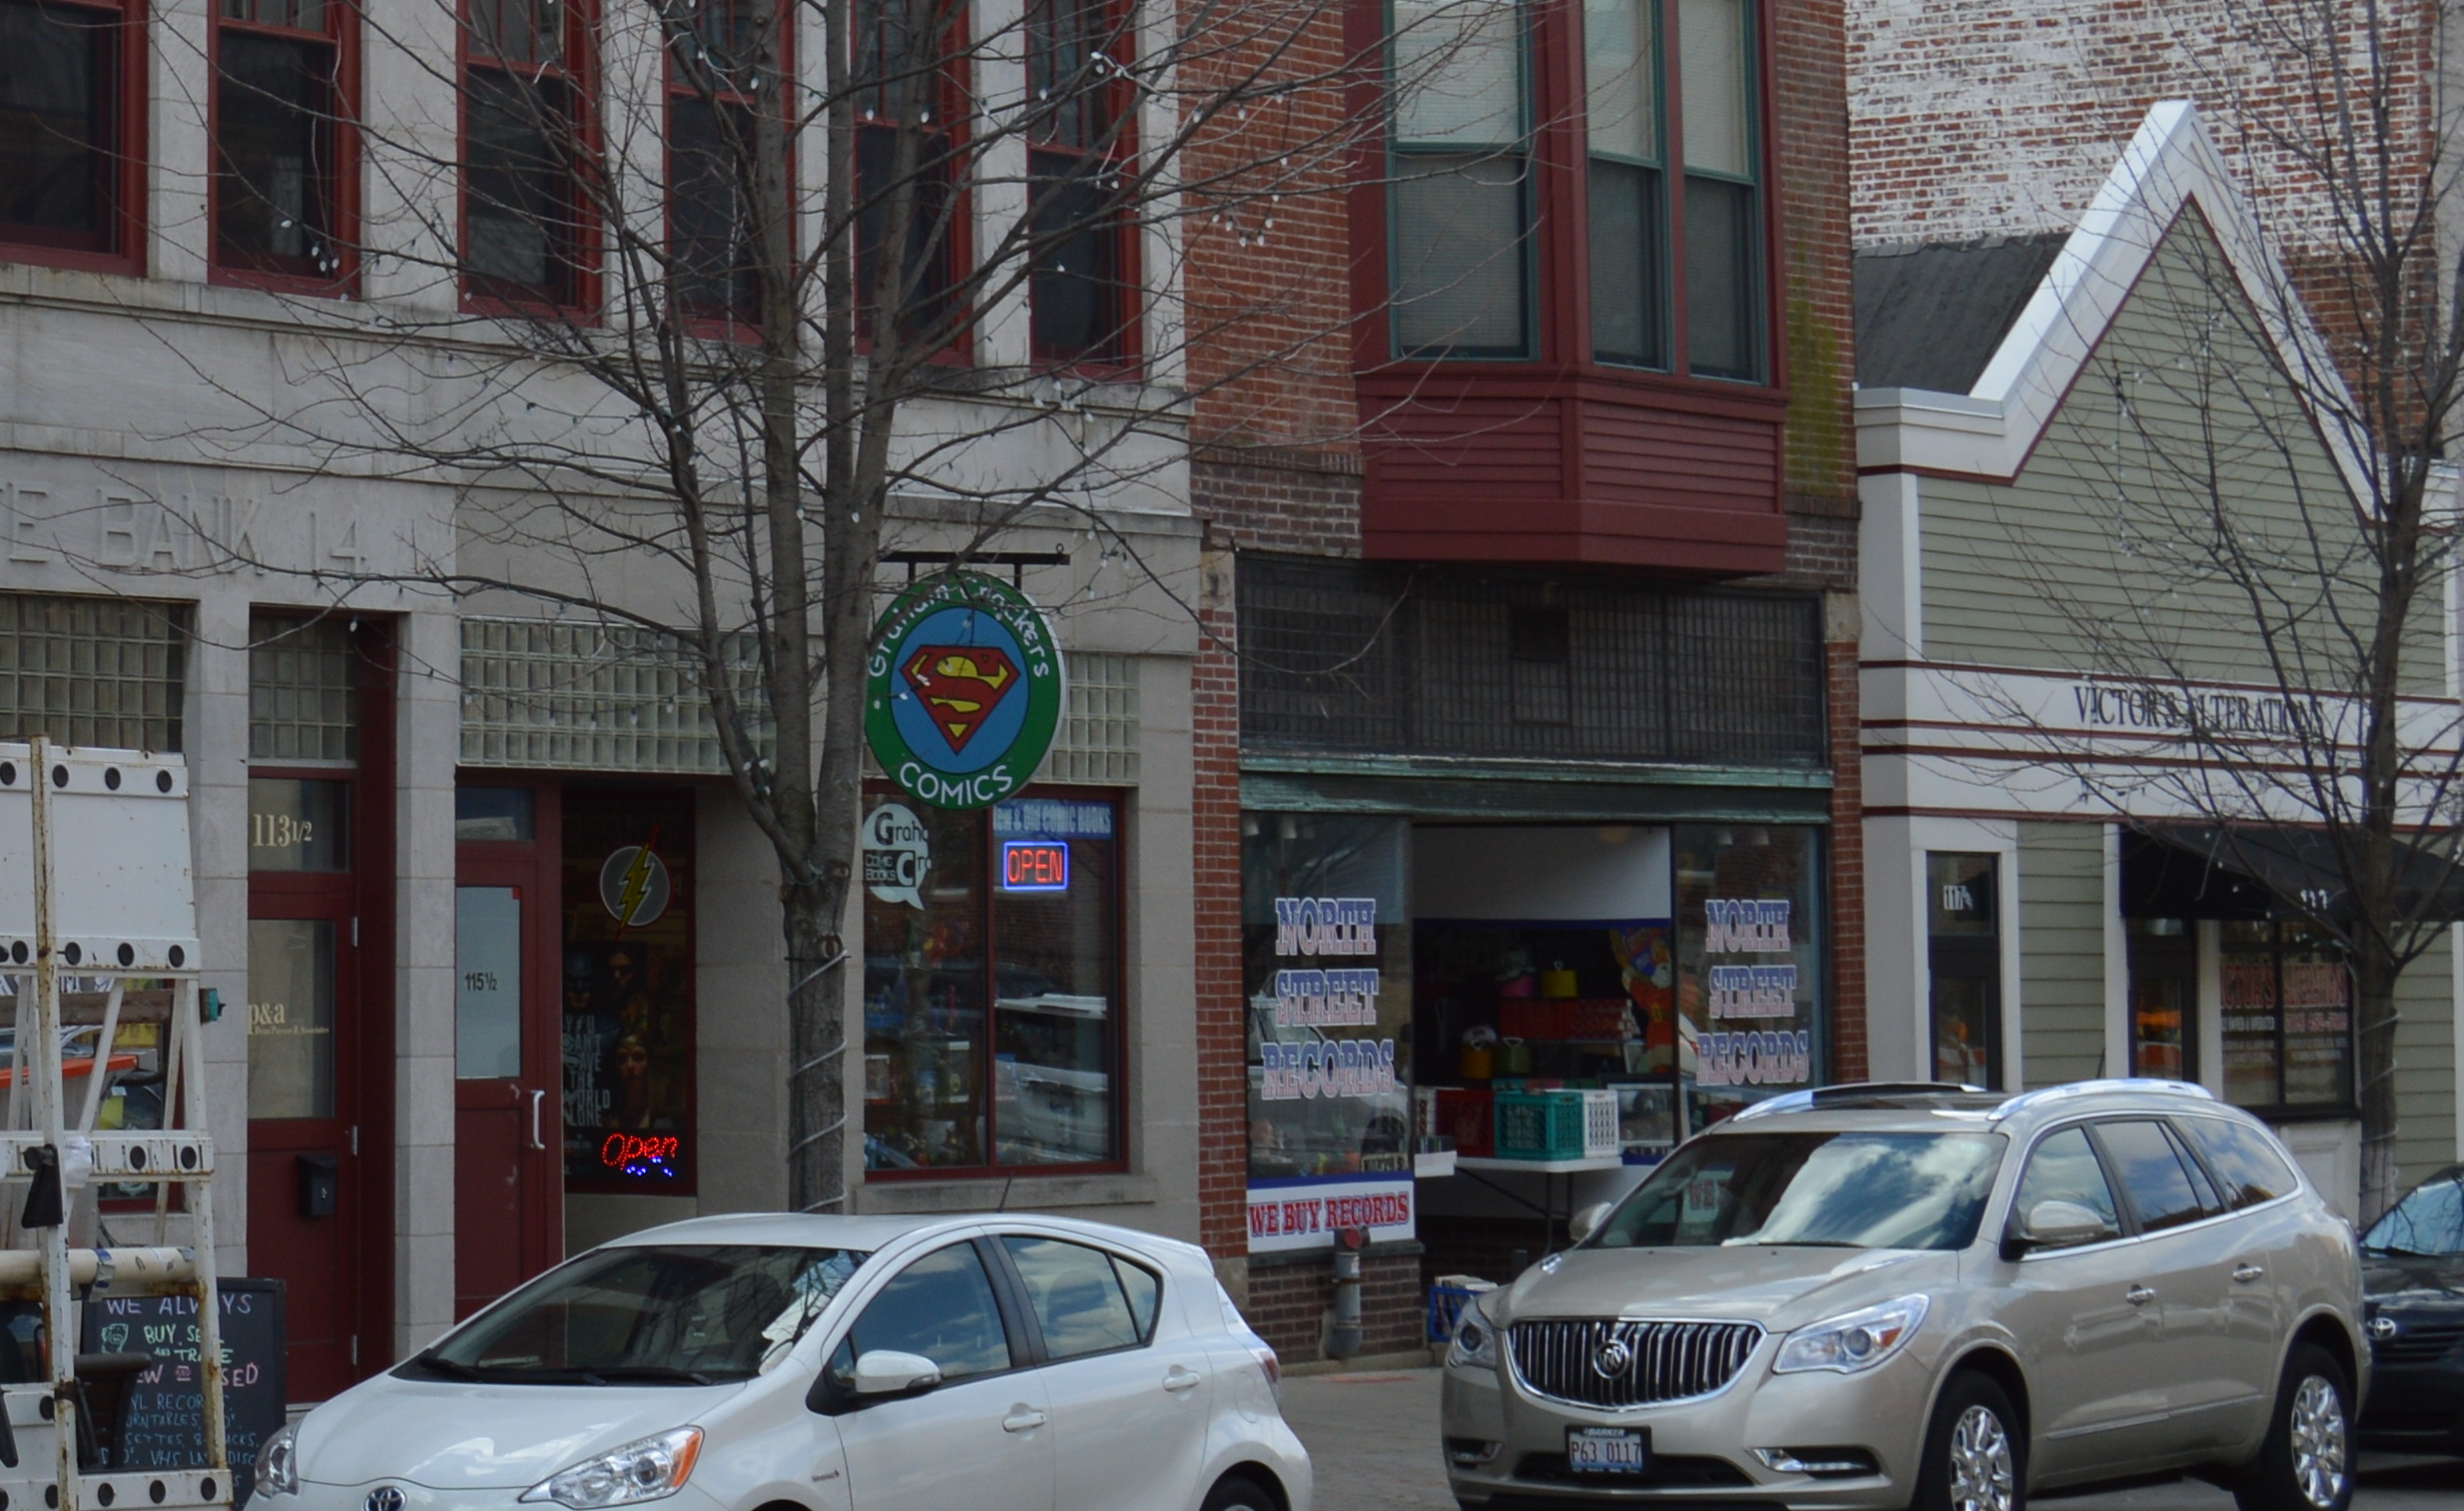 Several small businesses on W North Street in Uptown Normal (Christian Prenzler for AdaptBN)